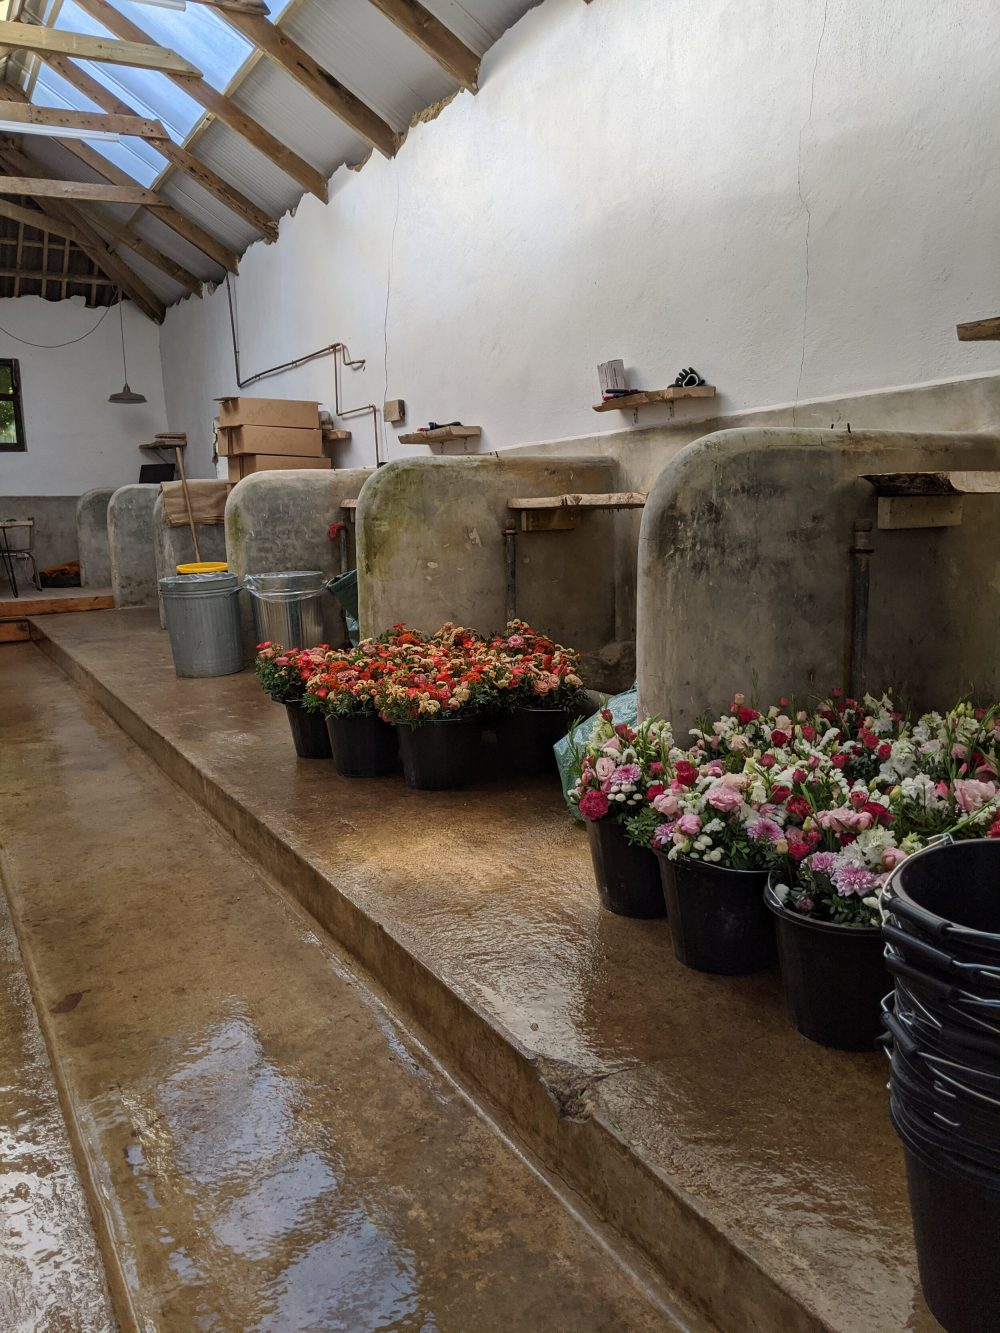 The cowshed where we make our bouquets, with a floor that can be wet-washed and drained